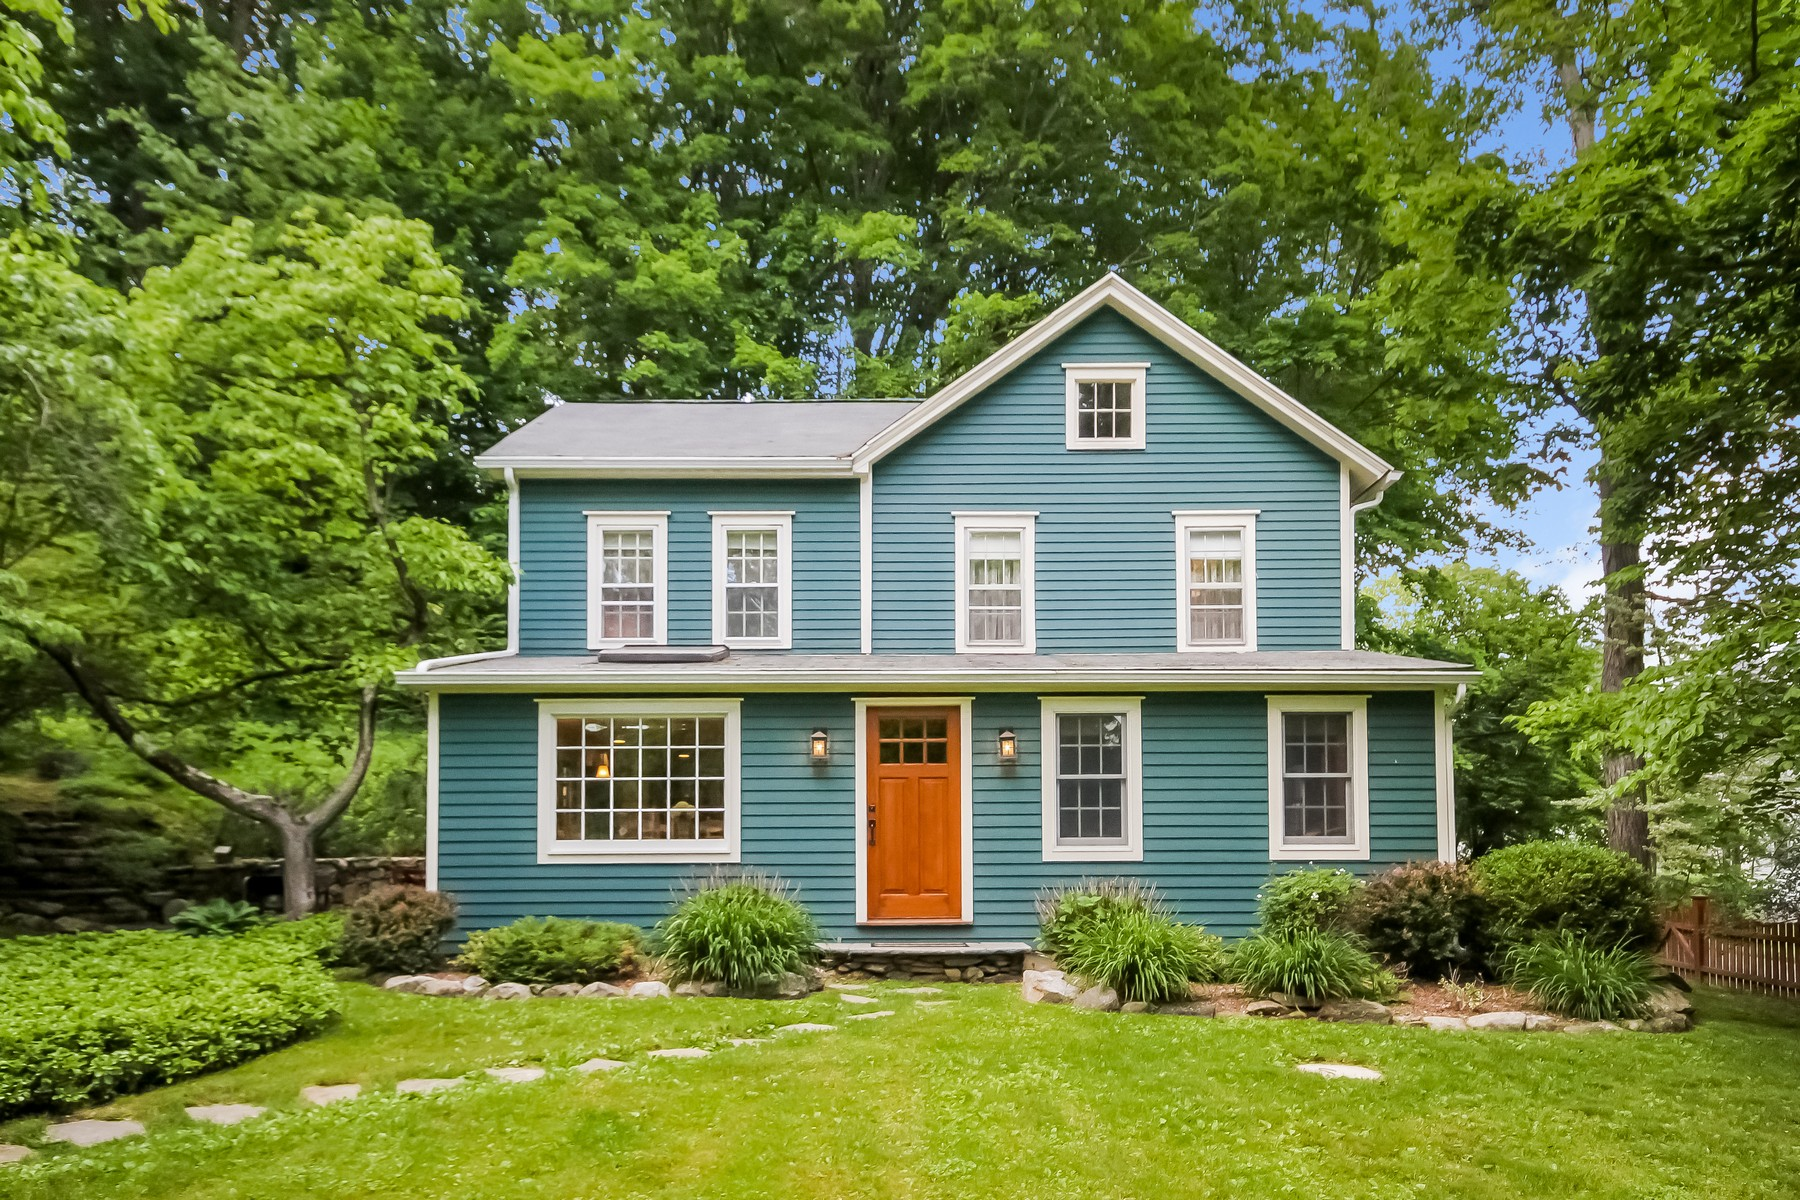 Single Family Home for Sale at Dreamy Antique Colonial 23 Church Street Wilton, Connecticut, 06897 United States